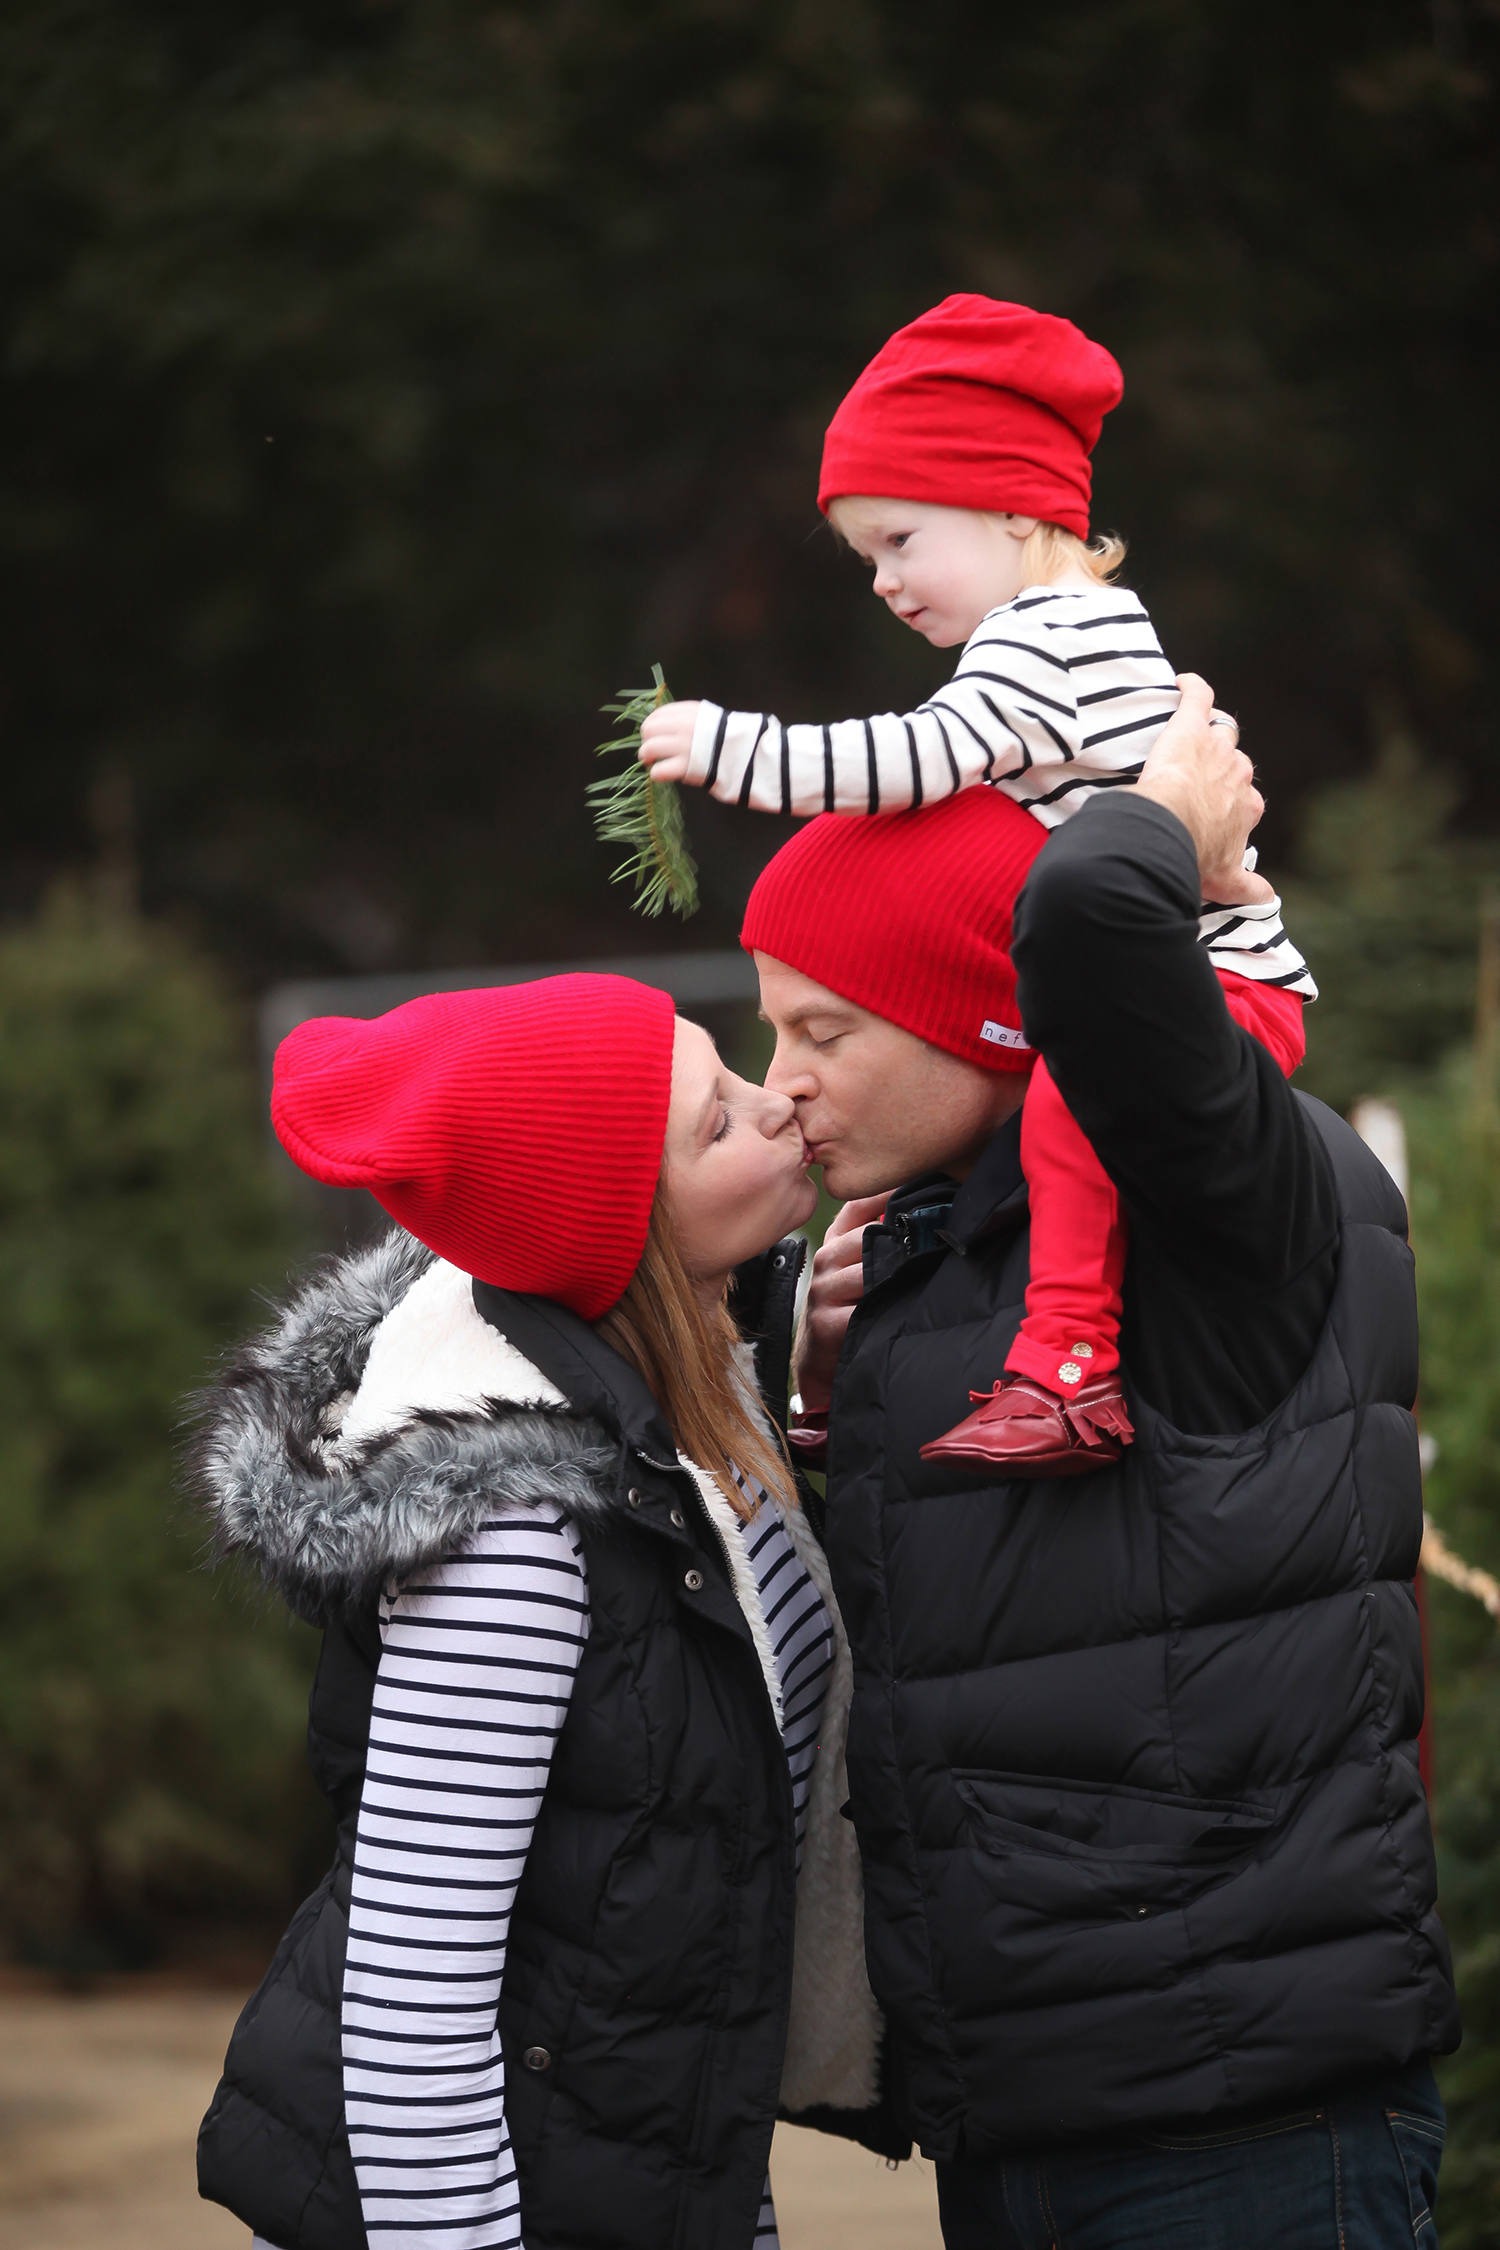 Looking for family photos outfits? I love these red beanies! So cute for christmas card photos!